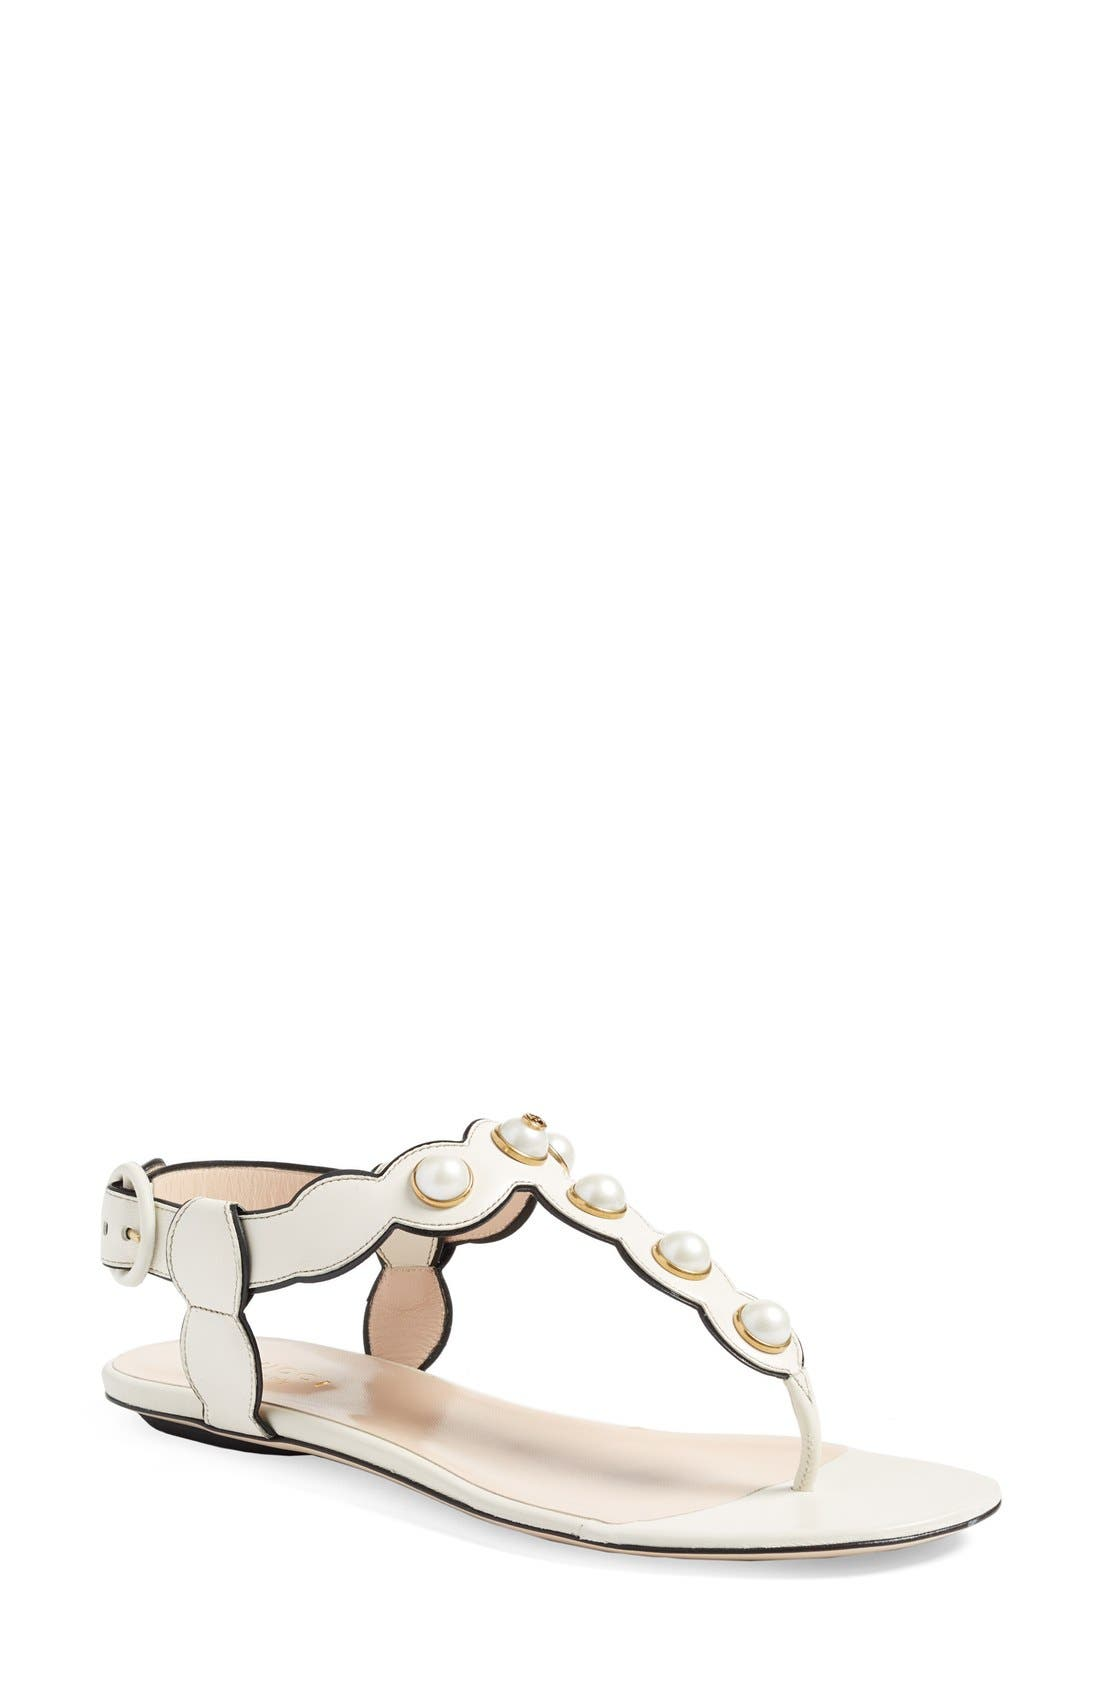 Alternate Image 1 Selected - Gucci 'Willow' Thong Sandal (Women)